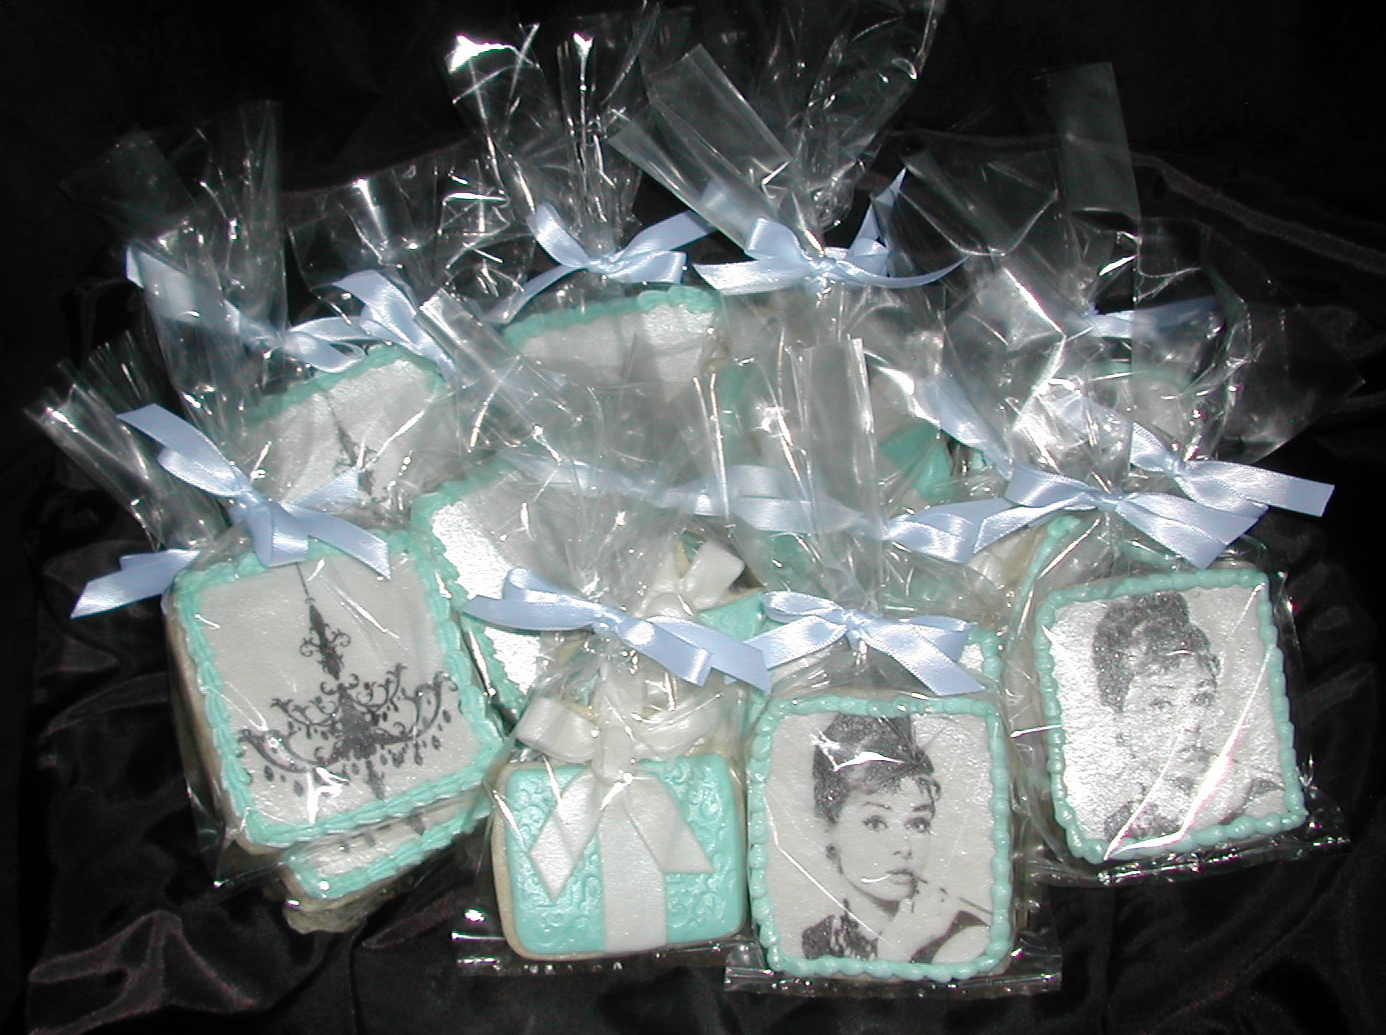 breakfast at tiffanys audrey hepburn decorated cookies bridal shower favors edible party